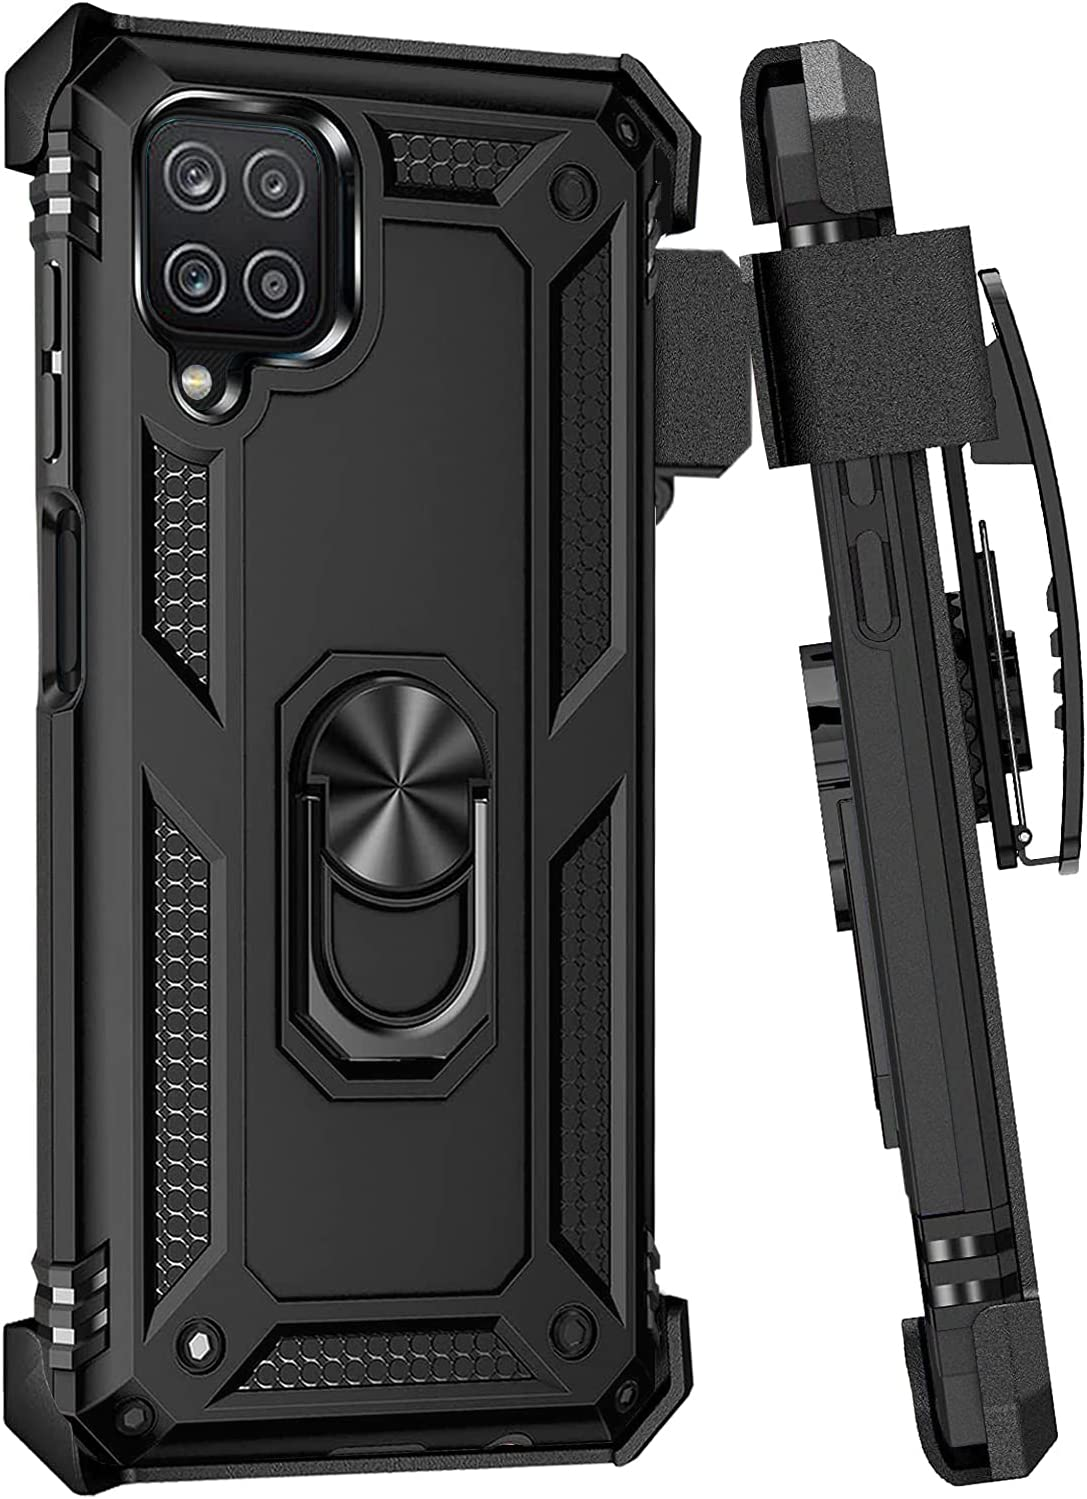 Case for Samsung Galaxy A42 5G Belt Clip Cover,Magnetic Ring Holder Military Grade Heavy Duty Phone Case,Kickstand Shockproof Protective Bumper case Drop Full Body Protection case (1)